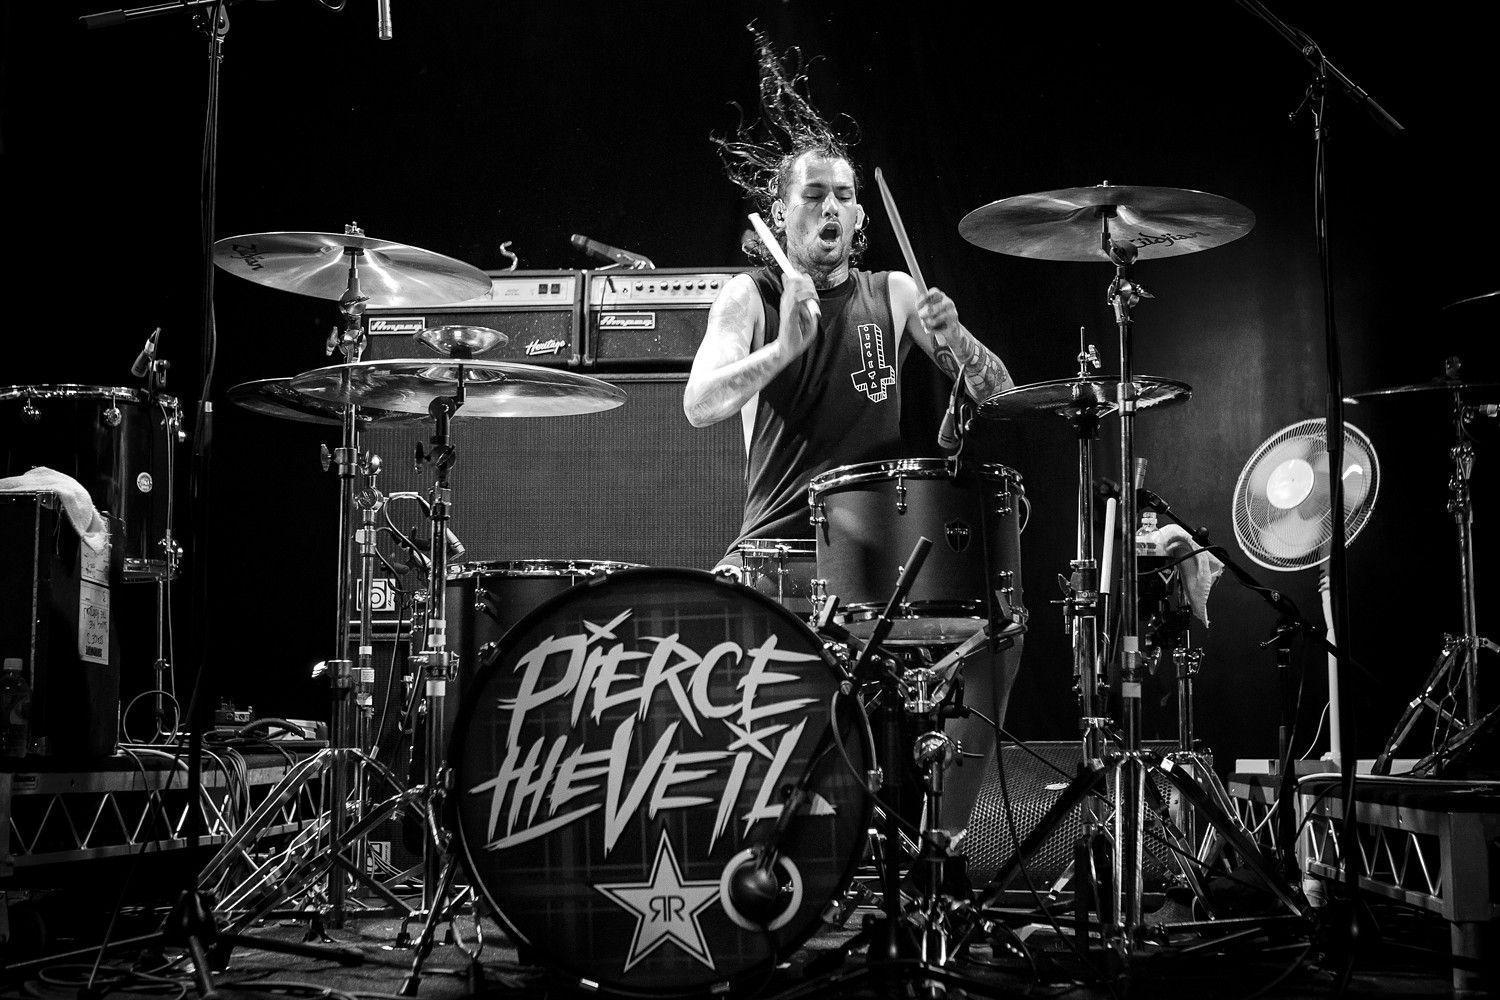 Pierce-the-veil-wallpaper-5 30676 HD Wallpapers | Opengavel.com